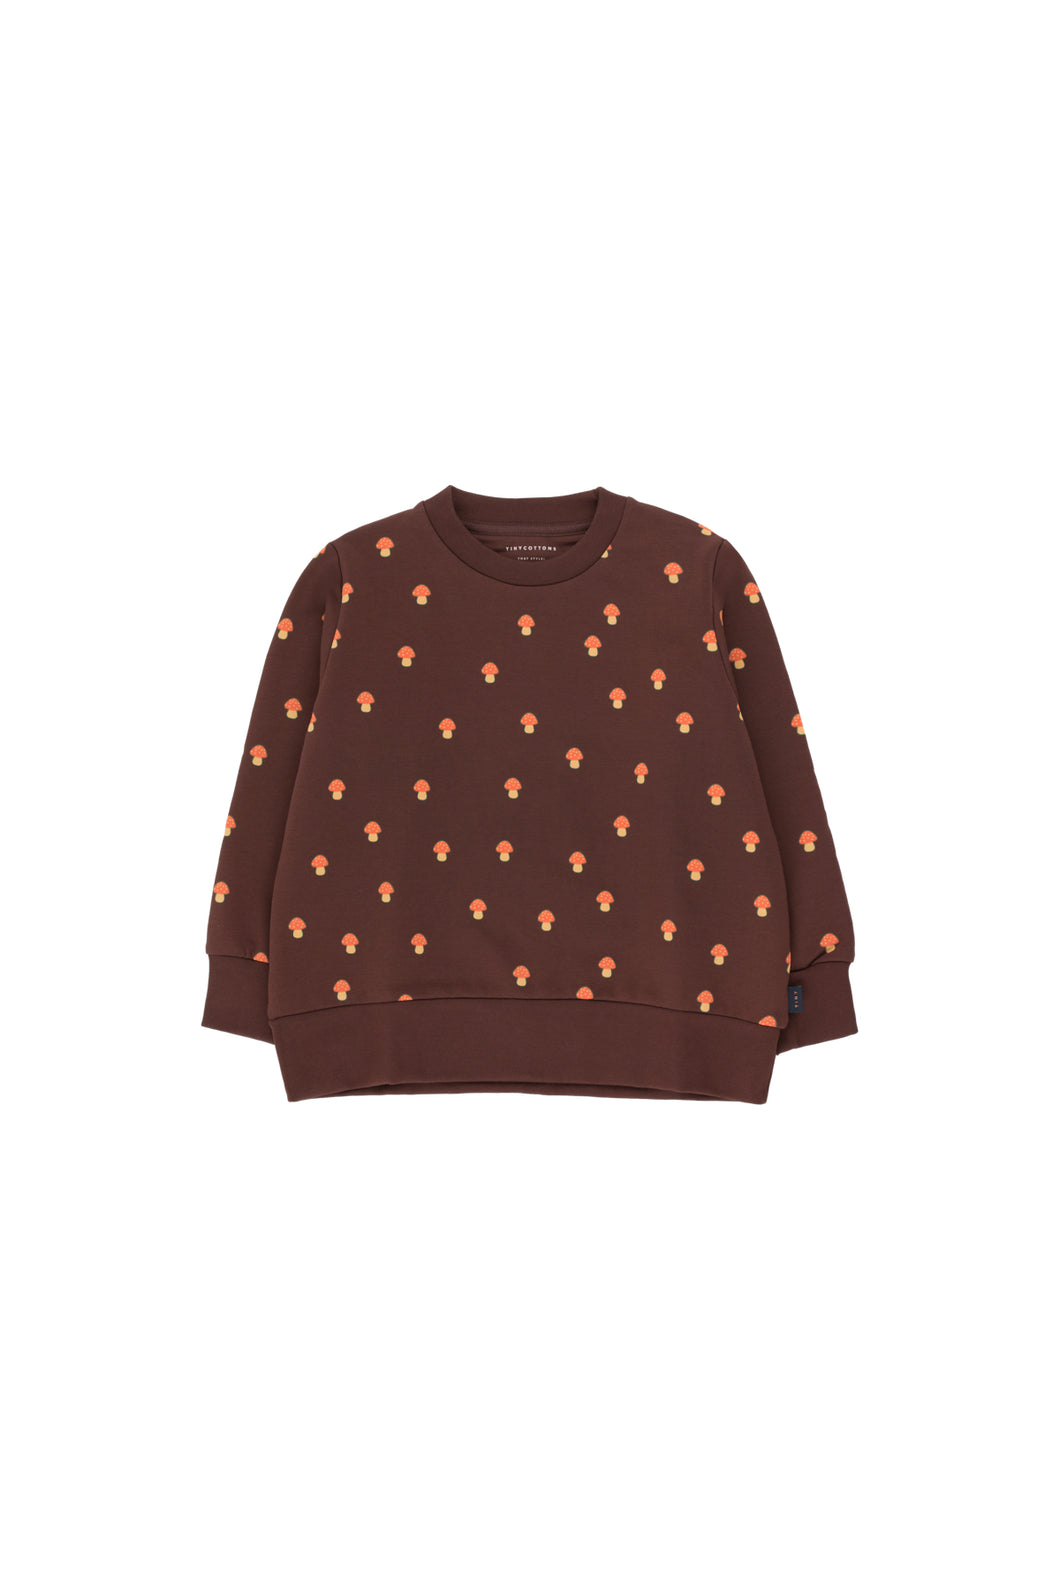 Mushrooms Sweatshirt (LAST ONE 8Y)